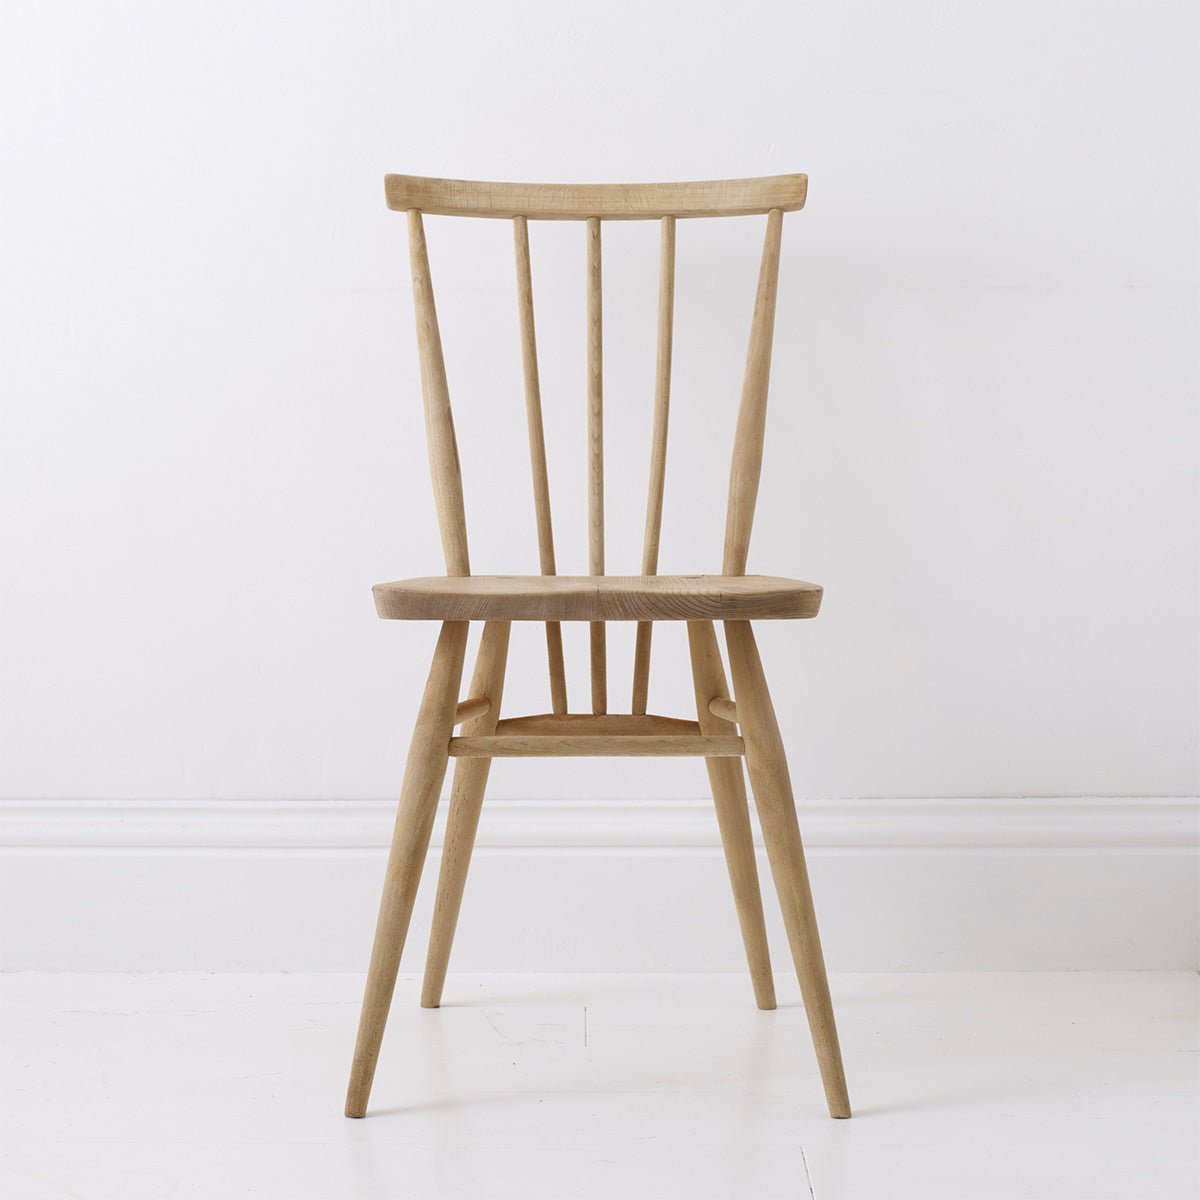 Ercol All Purpose Chair - Ercol - All Purpose Chair - Orginal Ercol - Small Furniture - Simple Design - Design Classic